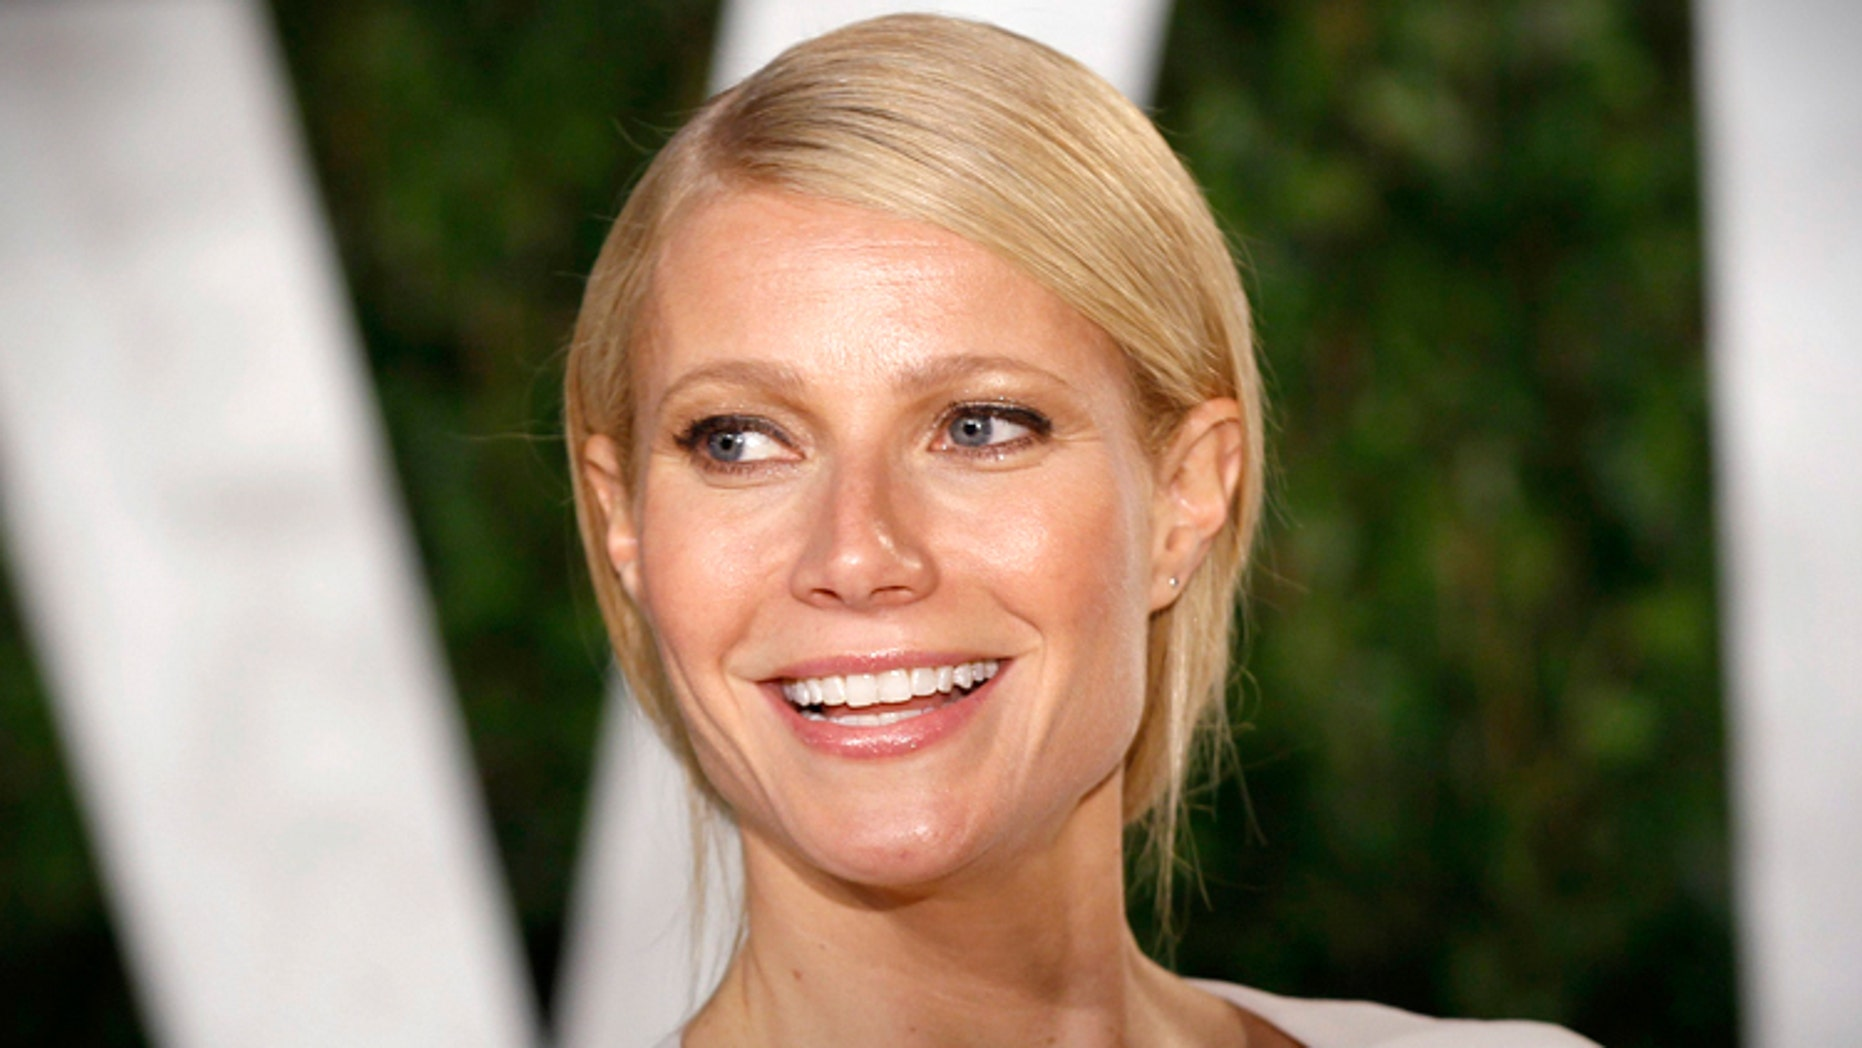 Gwyneth Paltrow is capitalizing on her organic empire with celebrity trainer Tracy Anderson.